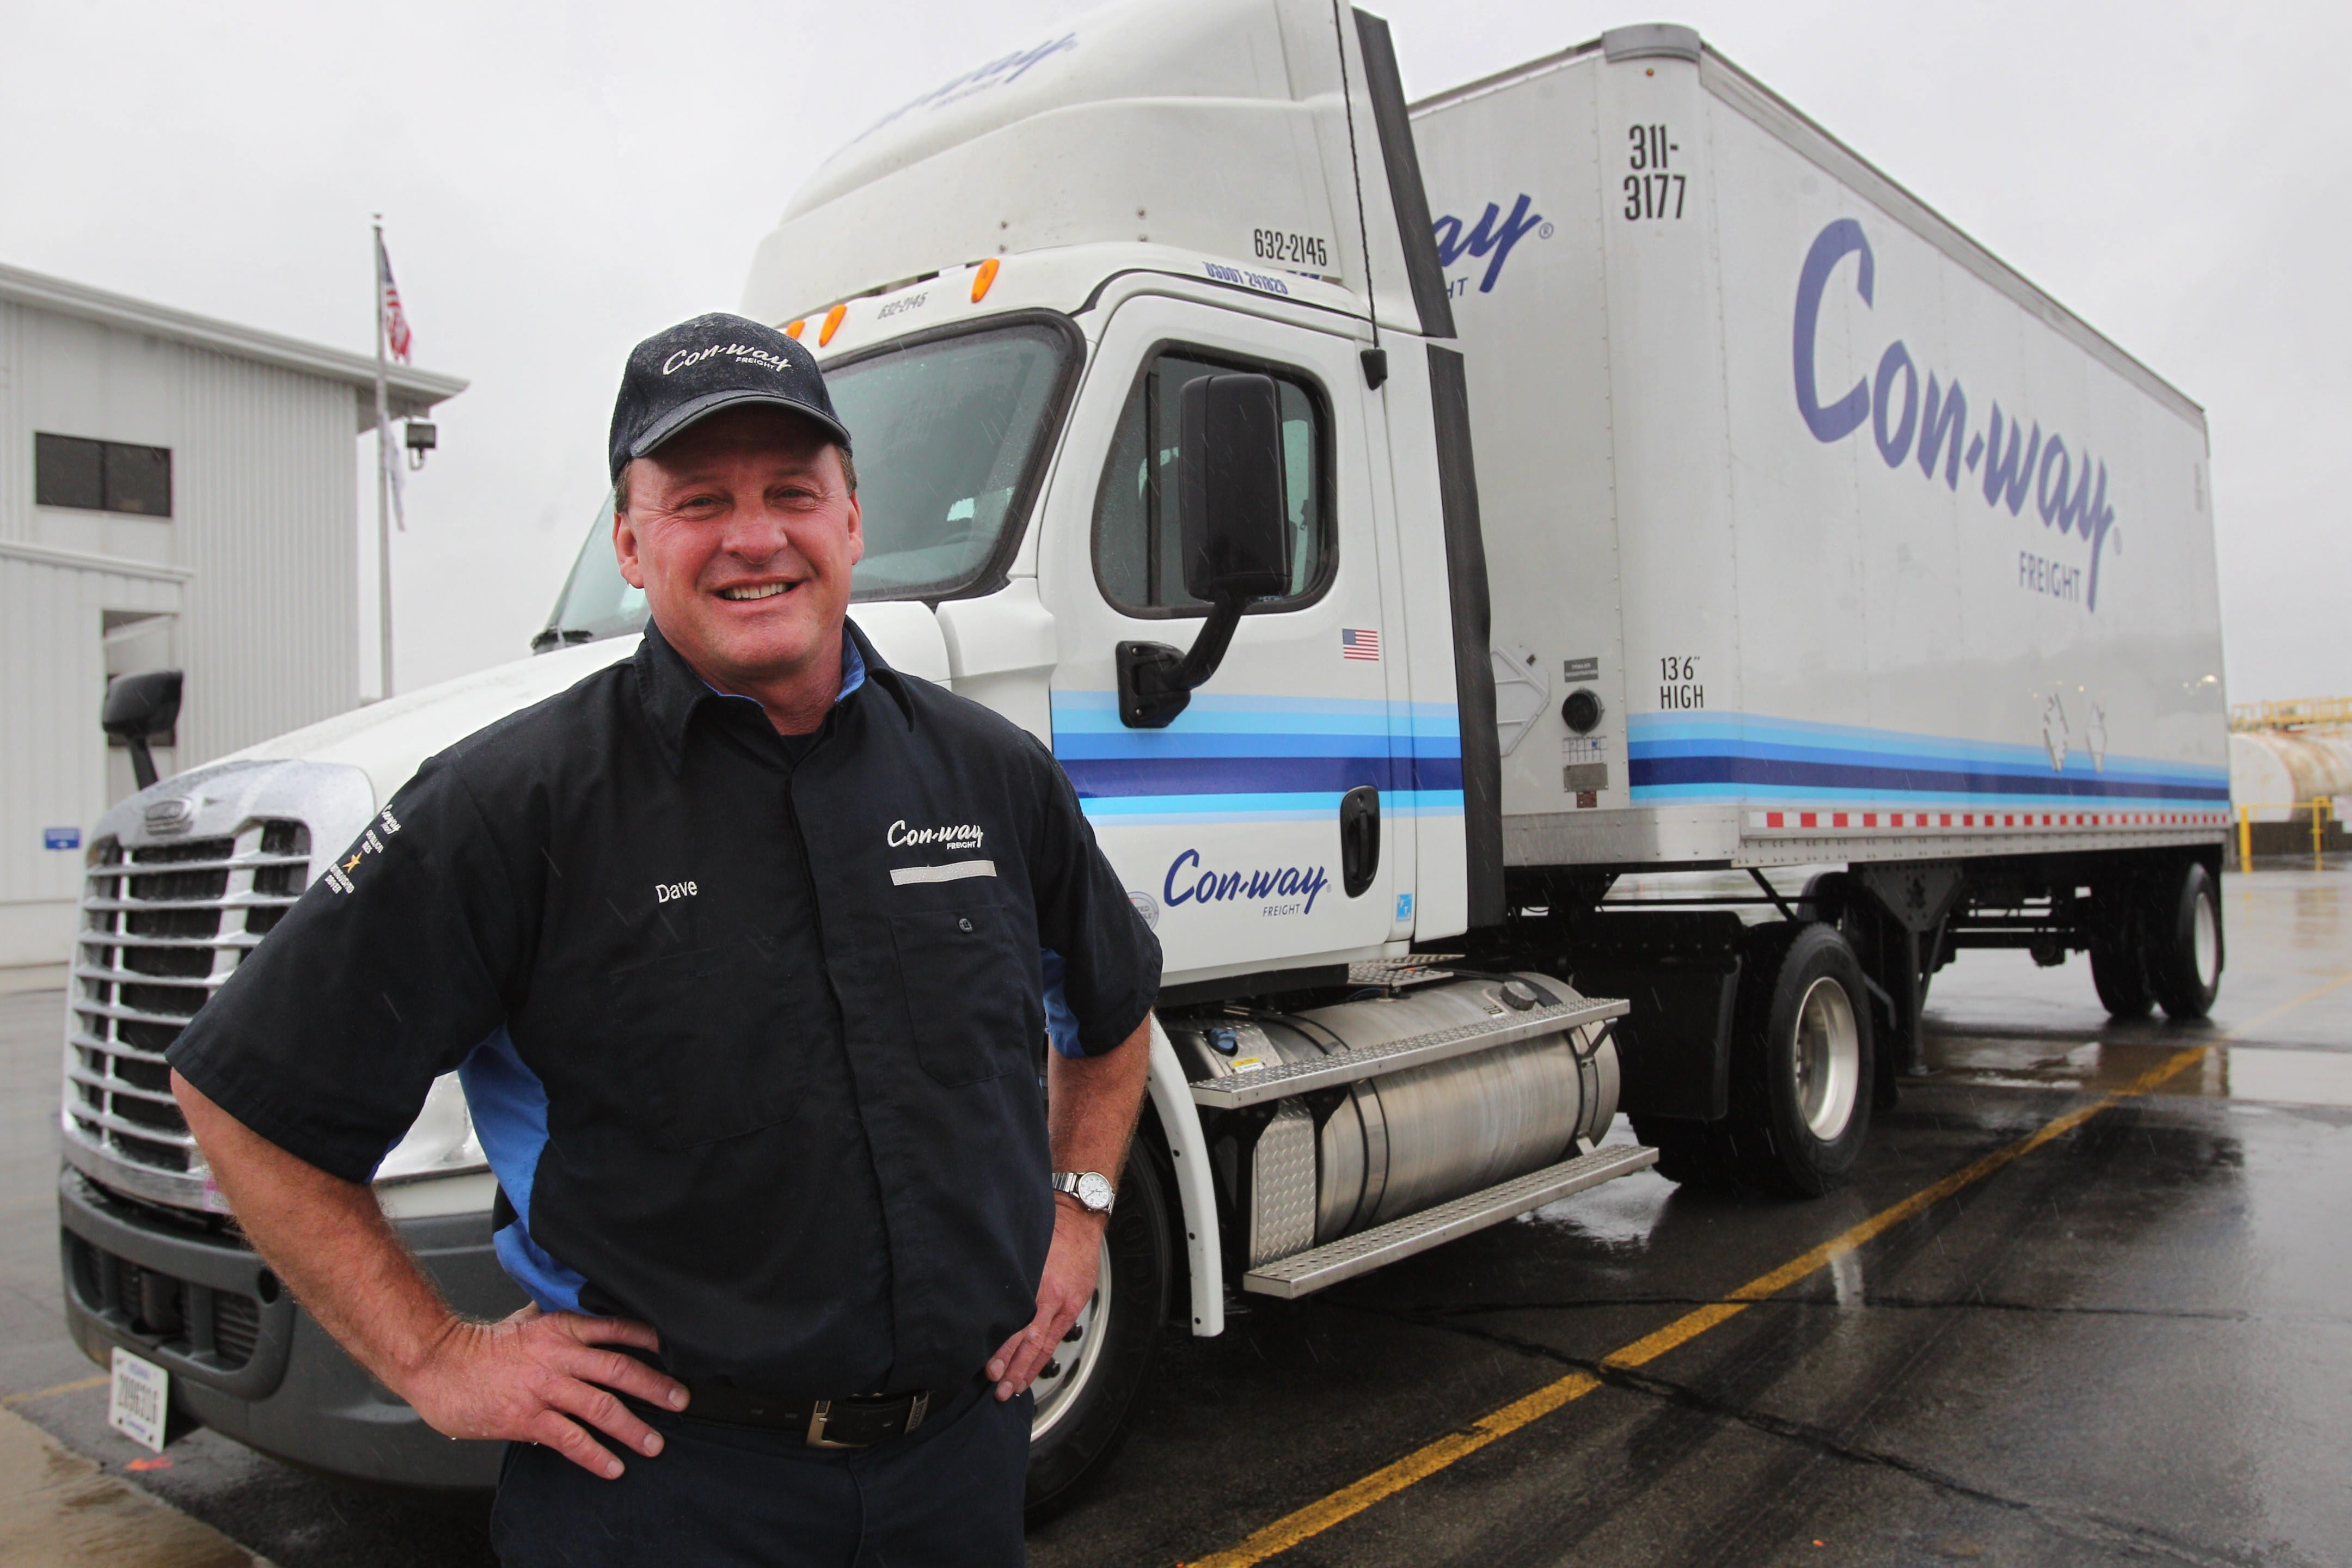 David May, above, has driven over 1 million miles without incident for Con-way Freight, besides the million he drove with another firm. Tom Lyons has logged 2 million miles.